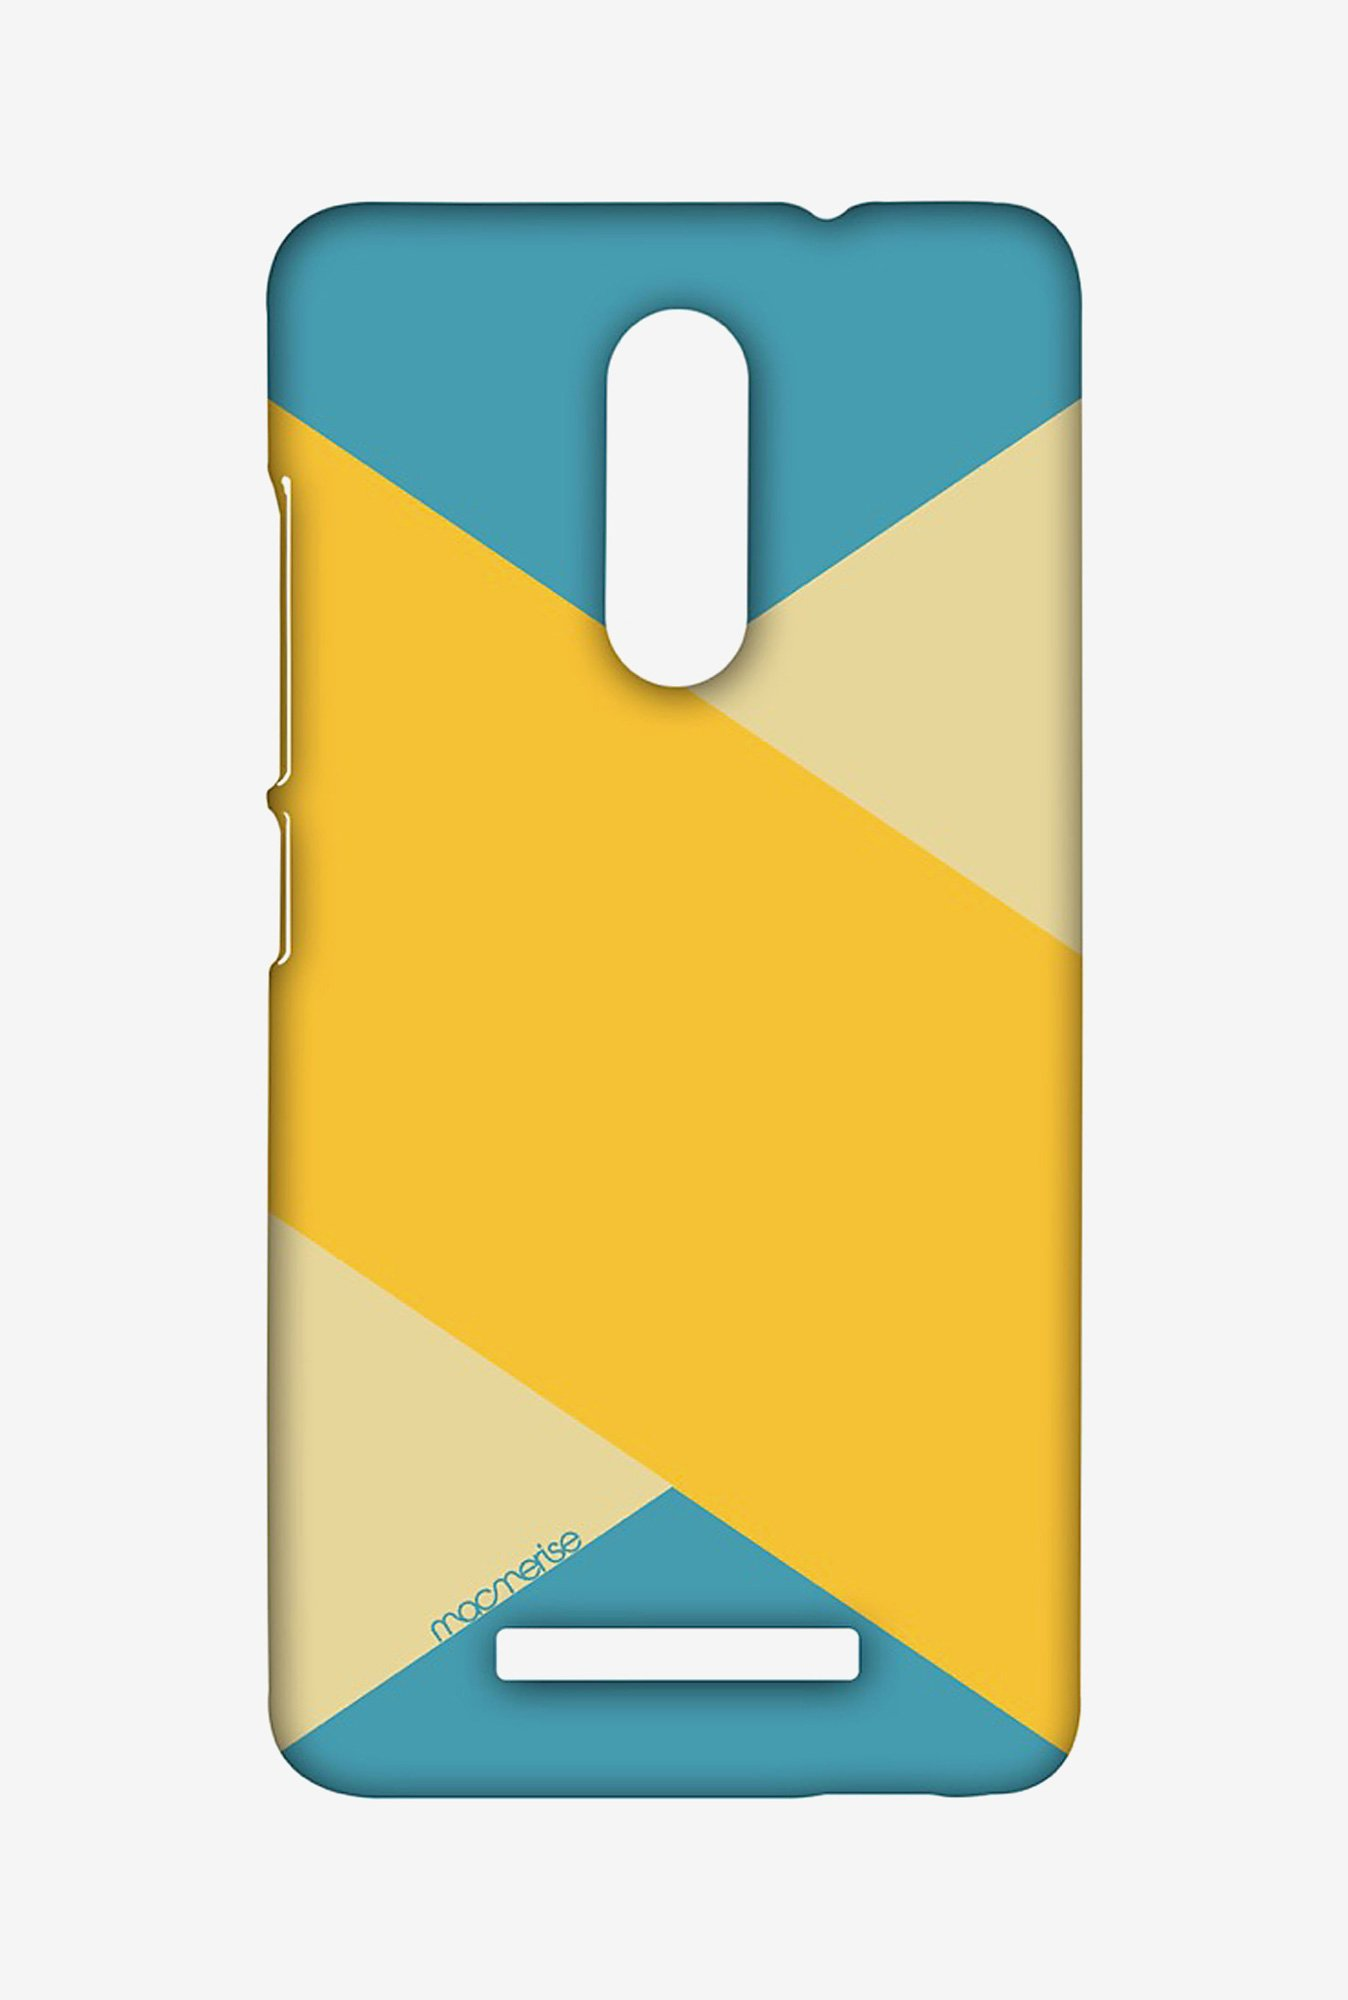 Macmerise XACN3SMI0848 Mustard Stripes Sublime Case for Xiaomi Redmi Note 3